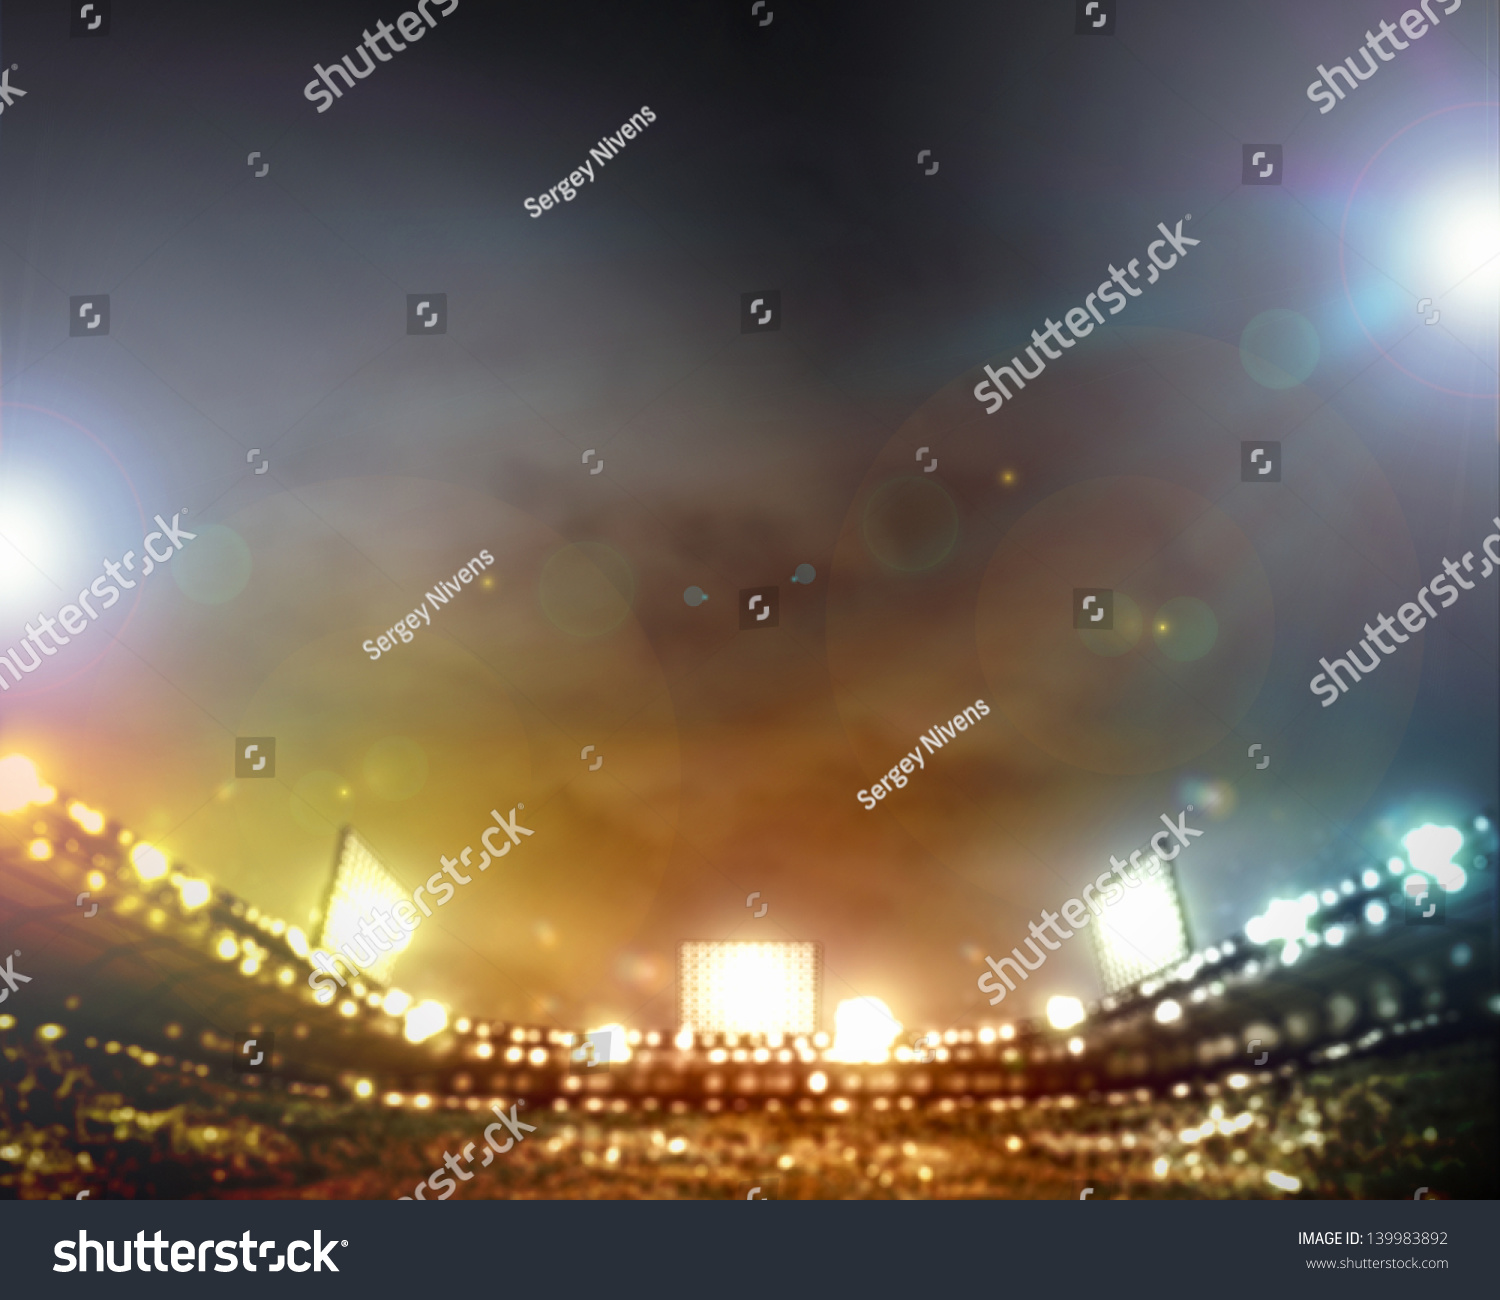 Stadium Of Lights: Image Of Stadium In Lights And Flashes Stock Photo